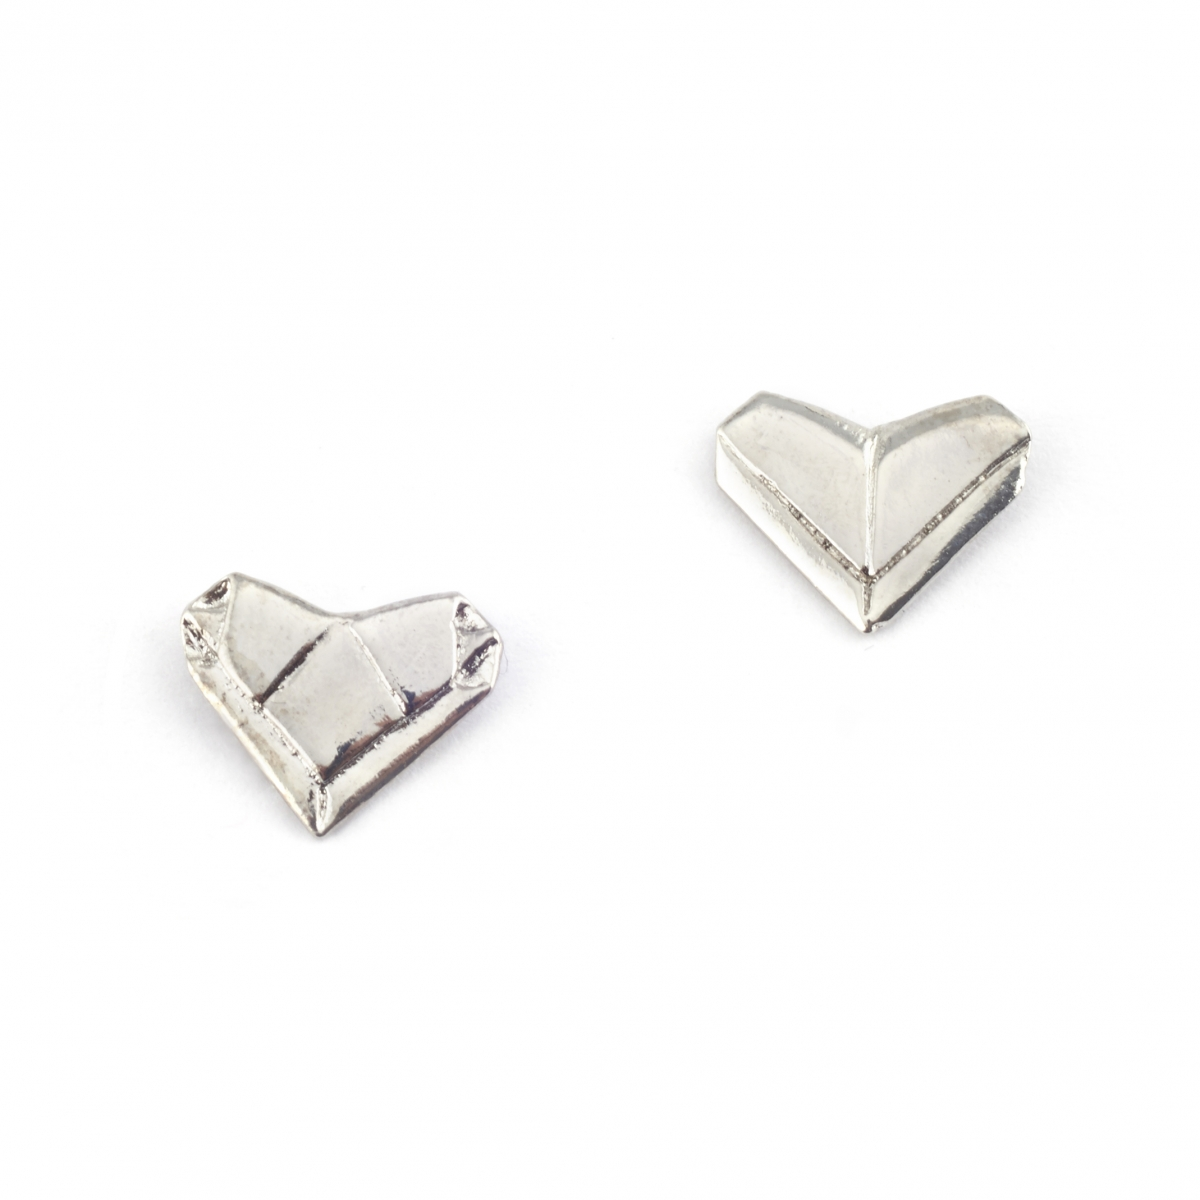 SILVER ORIGAMI HEART EARRINGS